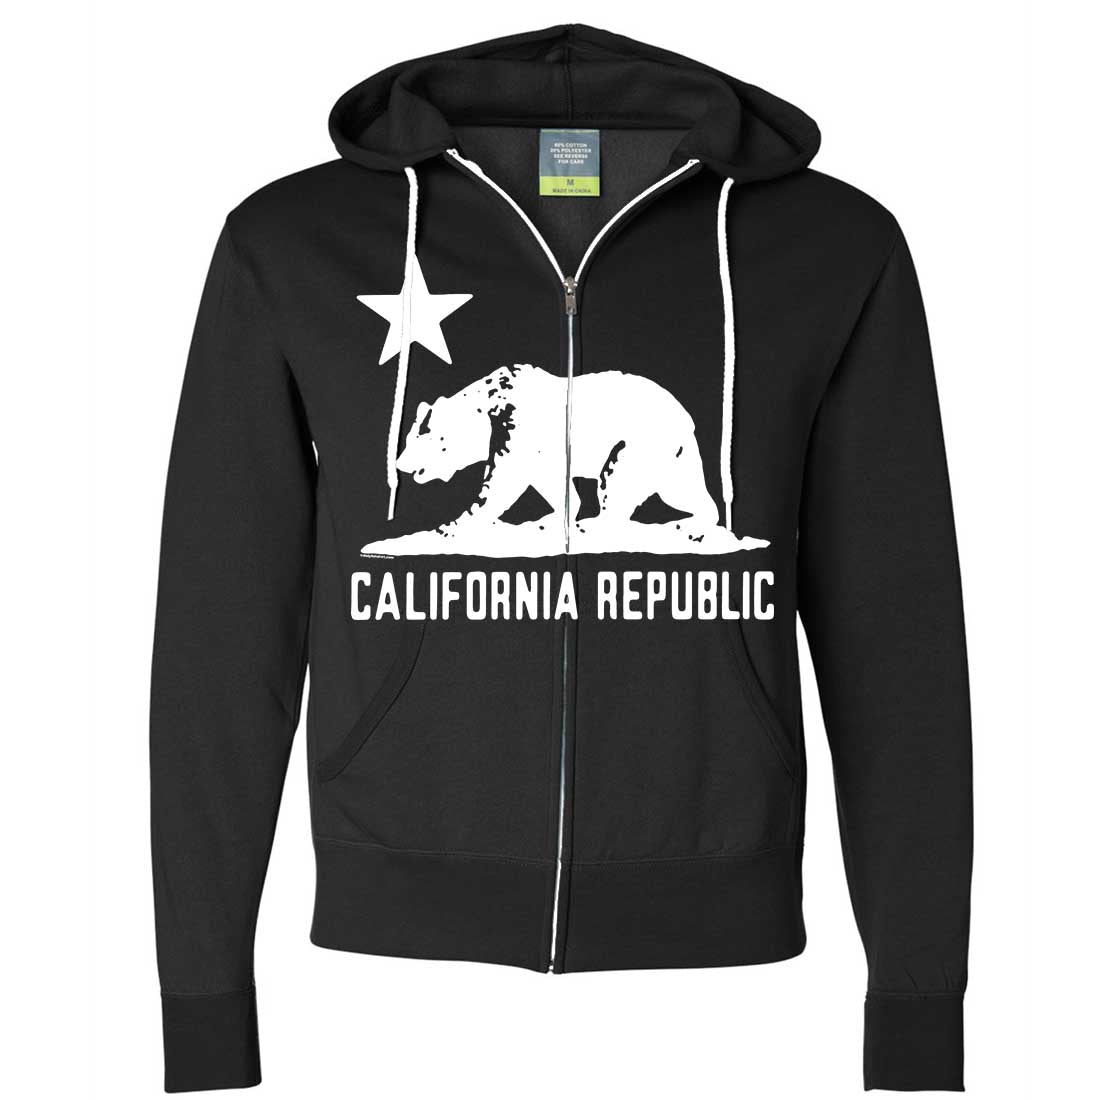 California Flag Oversize White Silhouette Zip-Up Hoodie